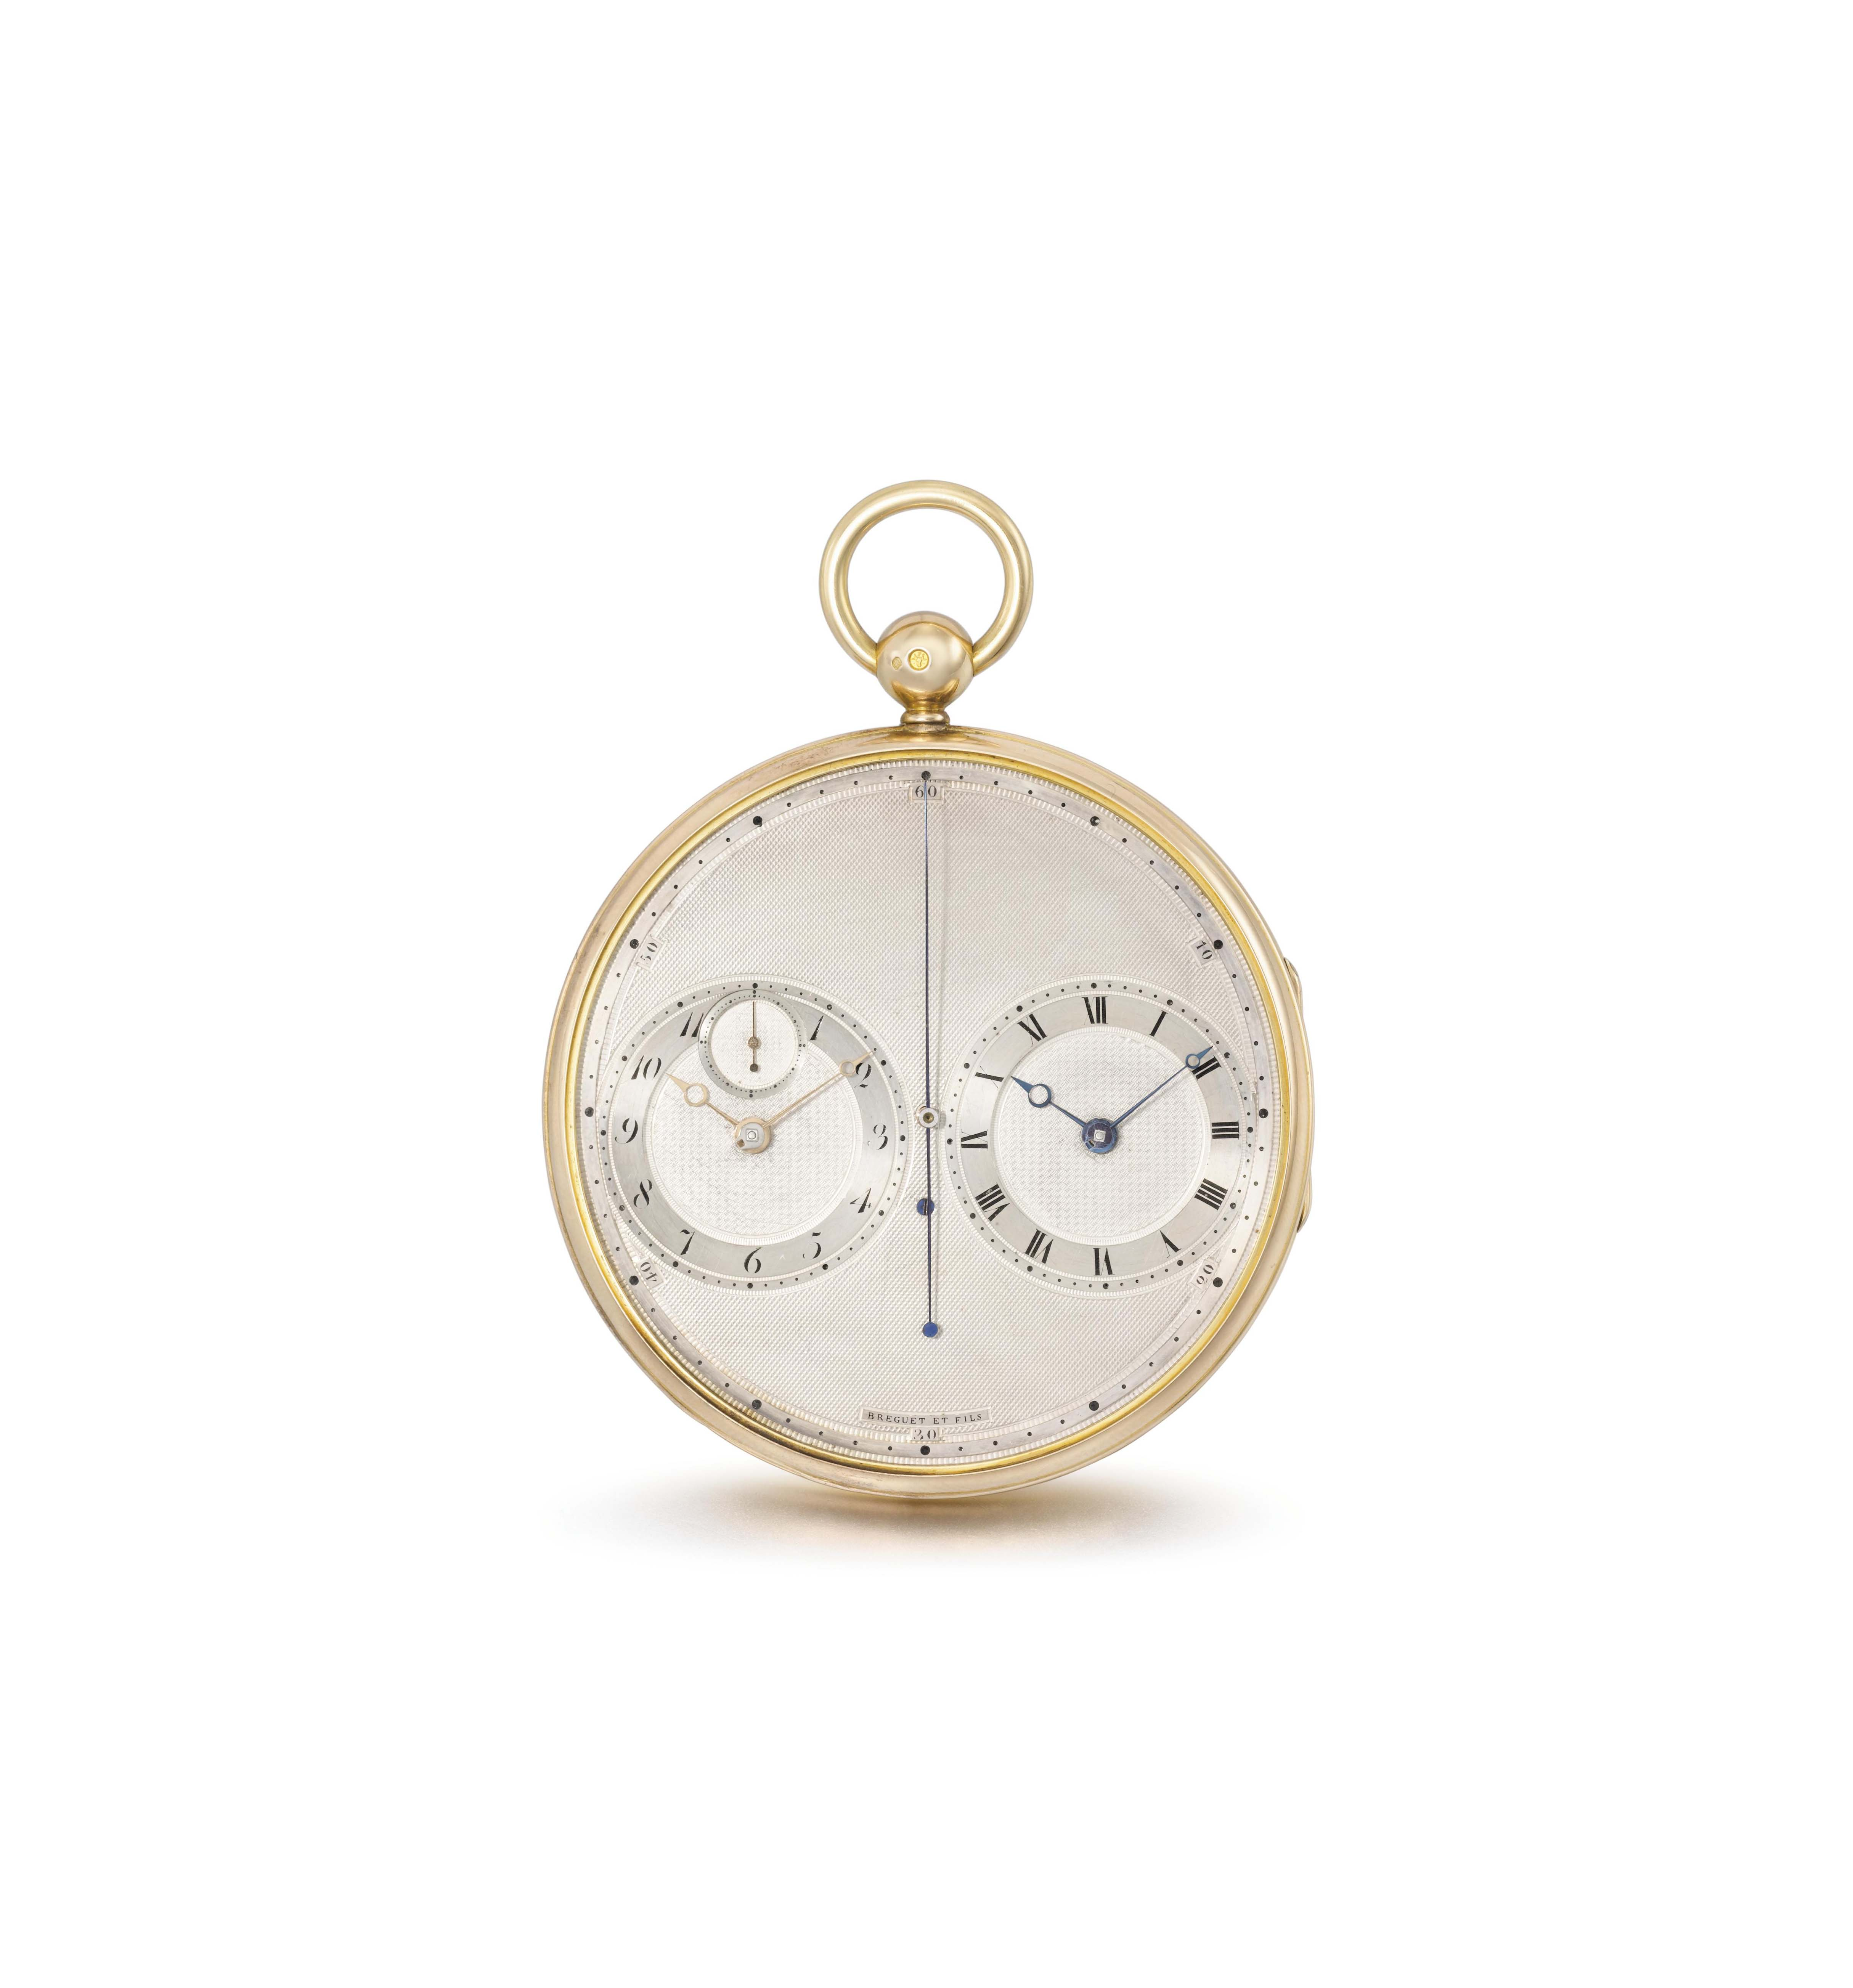 Lot 230 | Rediscover the real quintessence of the Art of Breguet How many  superlatives can be found these days in auction catalogues, describing lots  that ...